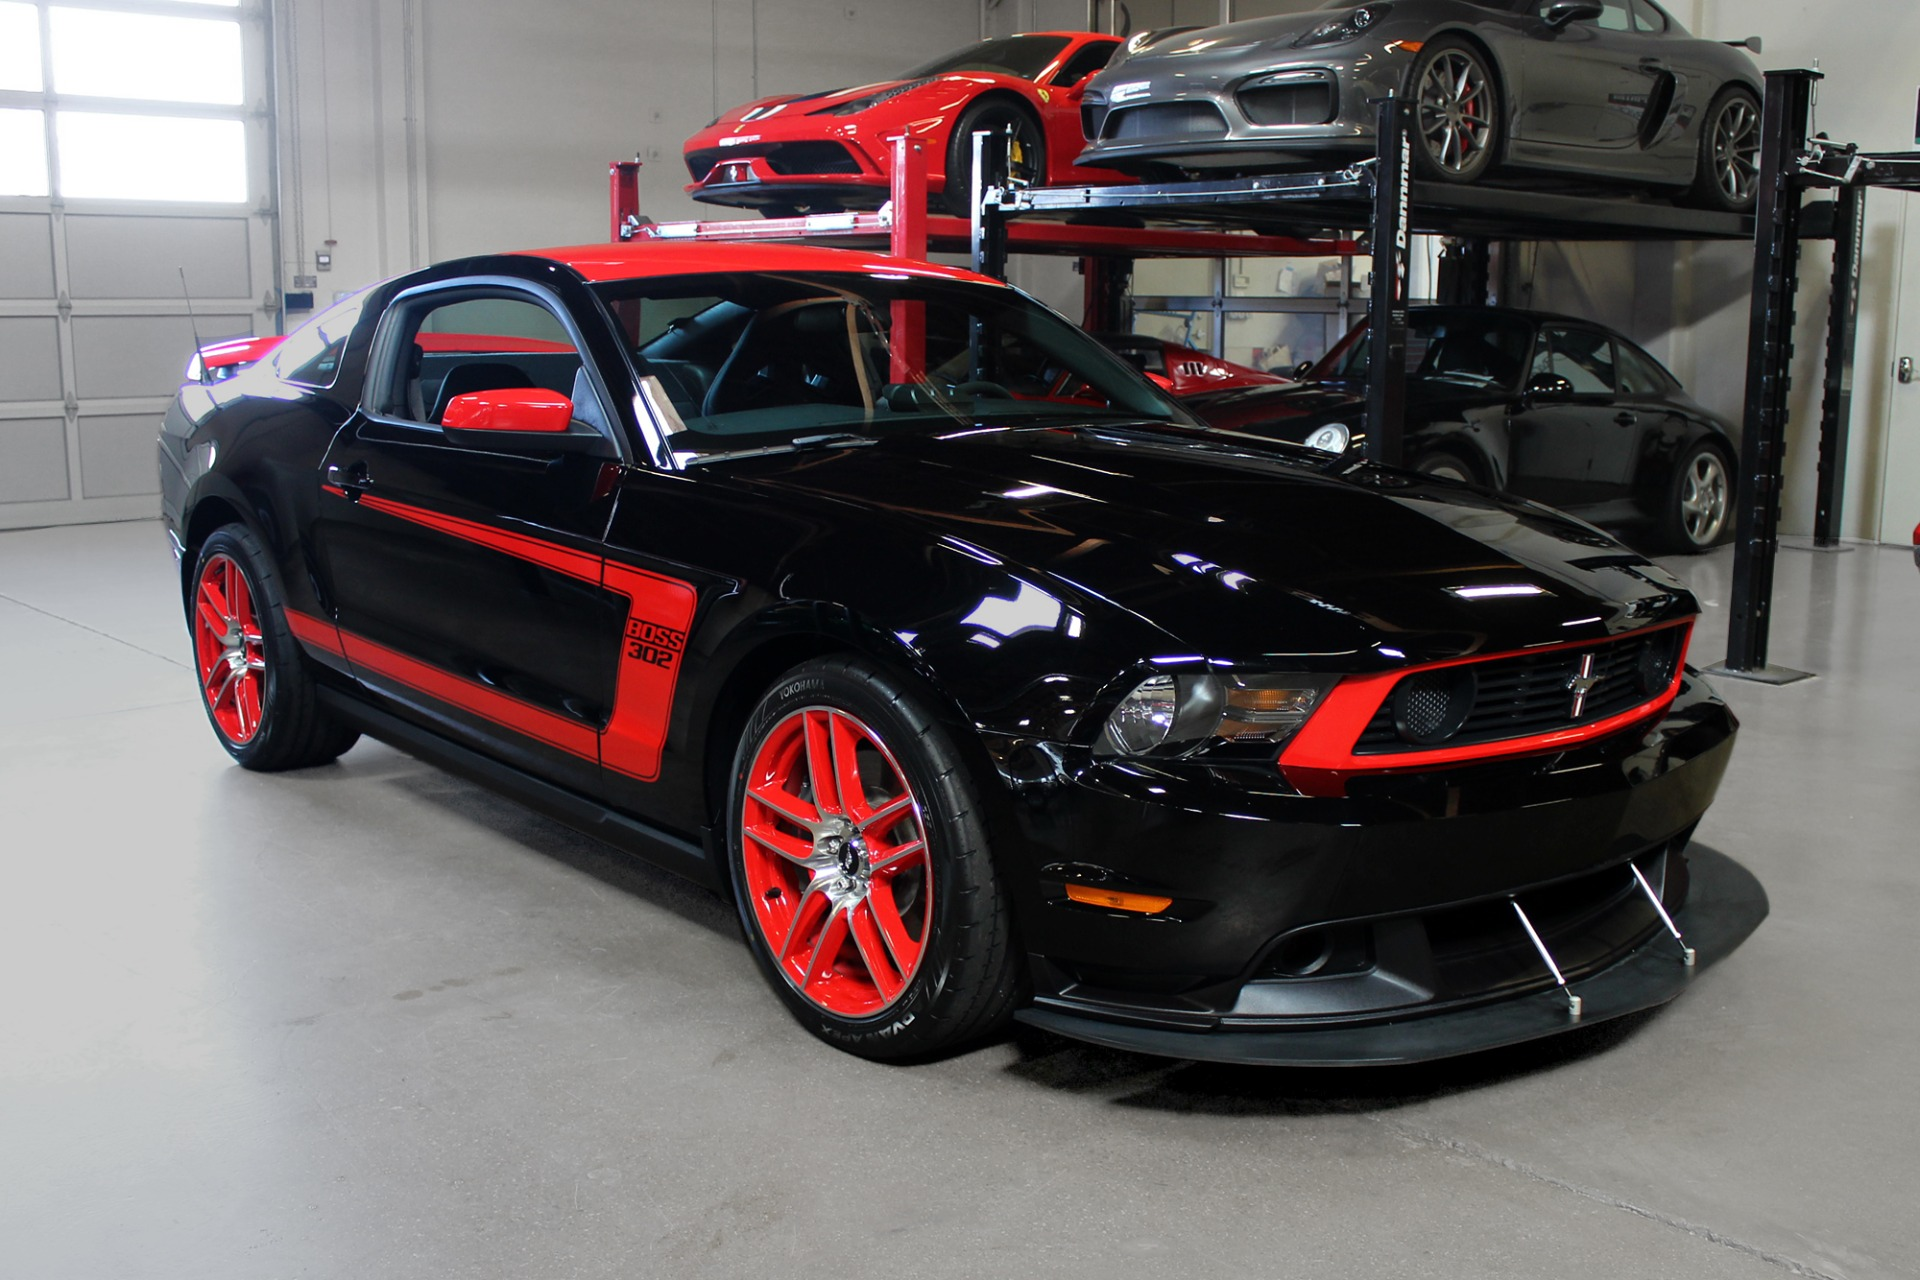 Used 2012 Ford Mustang Boss 302 Laguna Seca Boss 302 Laguna Seca for sale Sold at San Francisco Sports Cars in San Carlos CA 94070 1